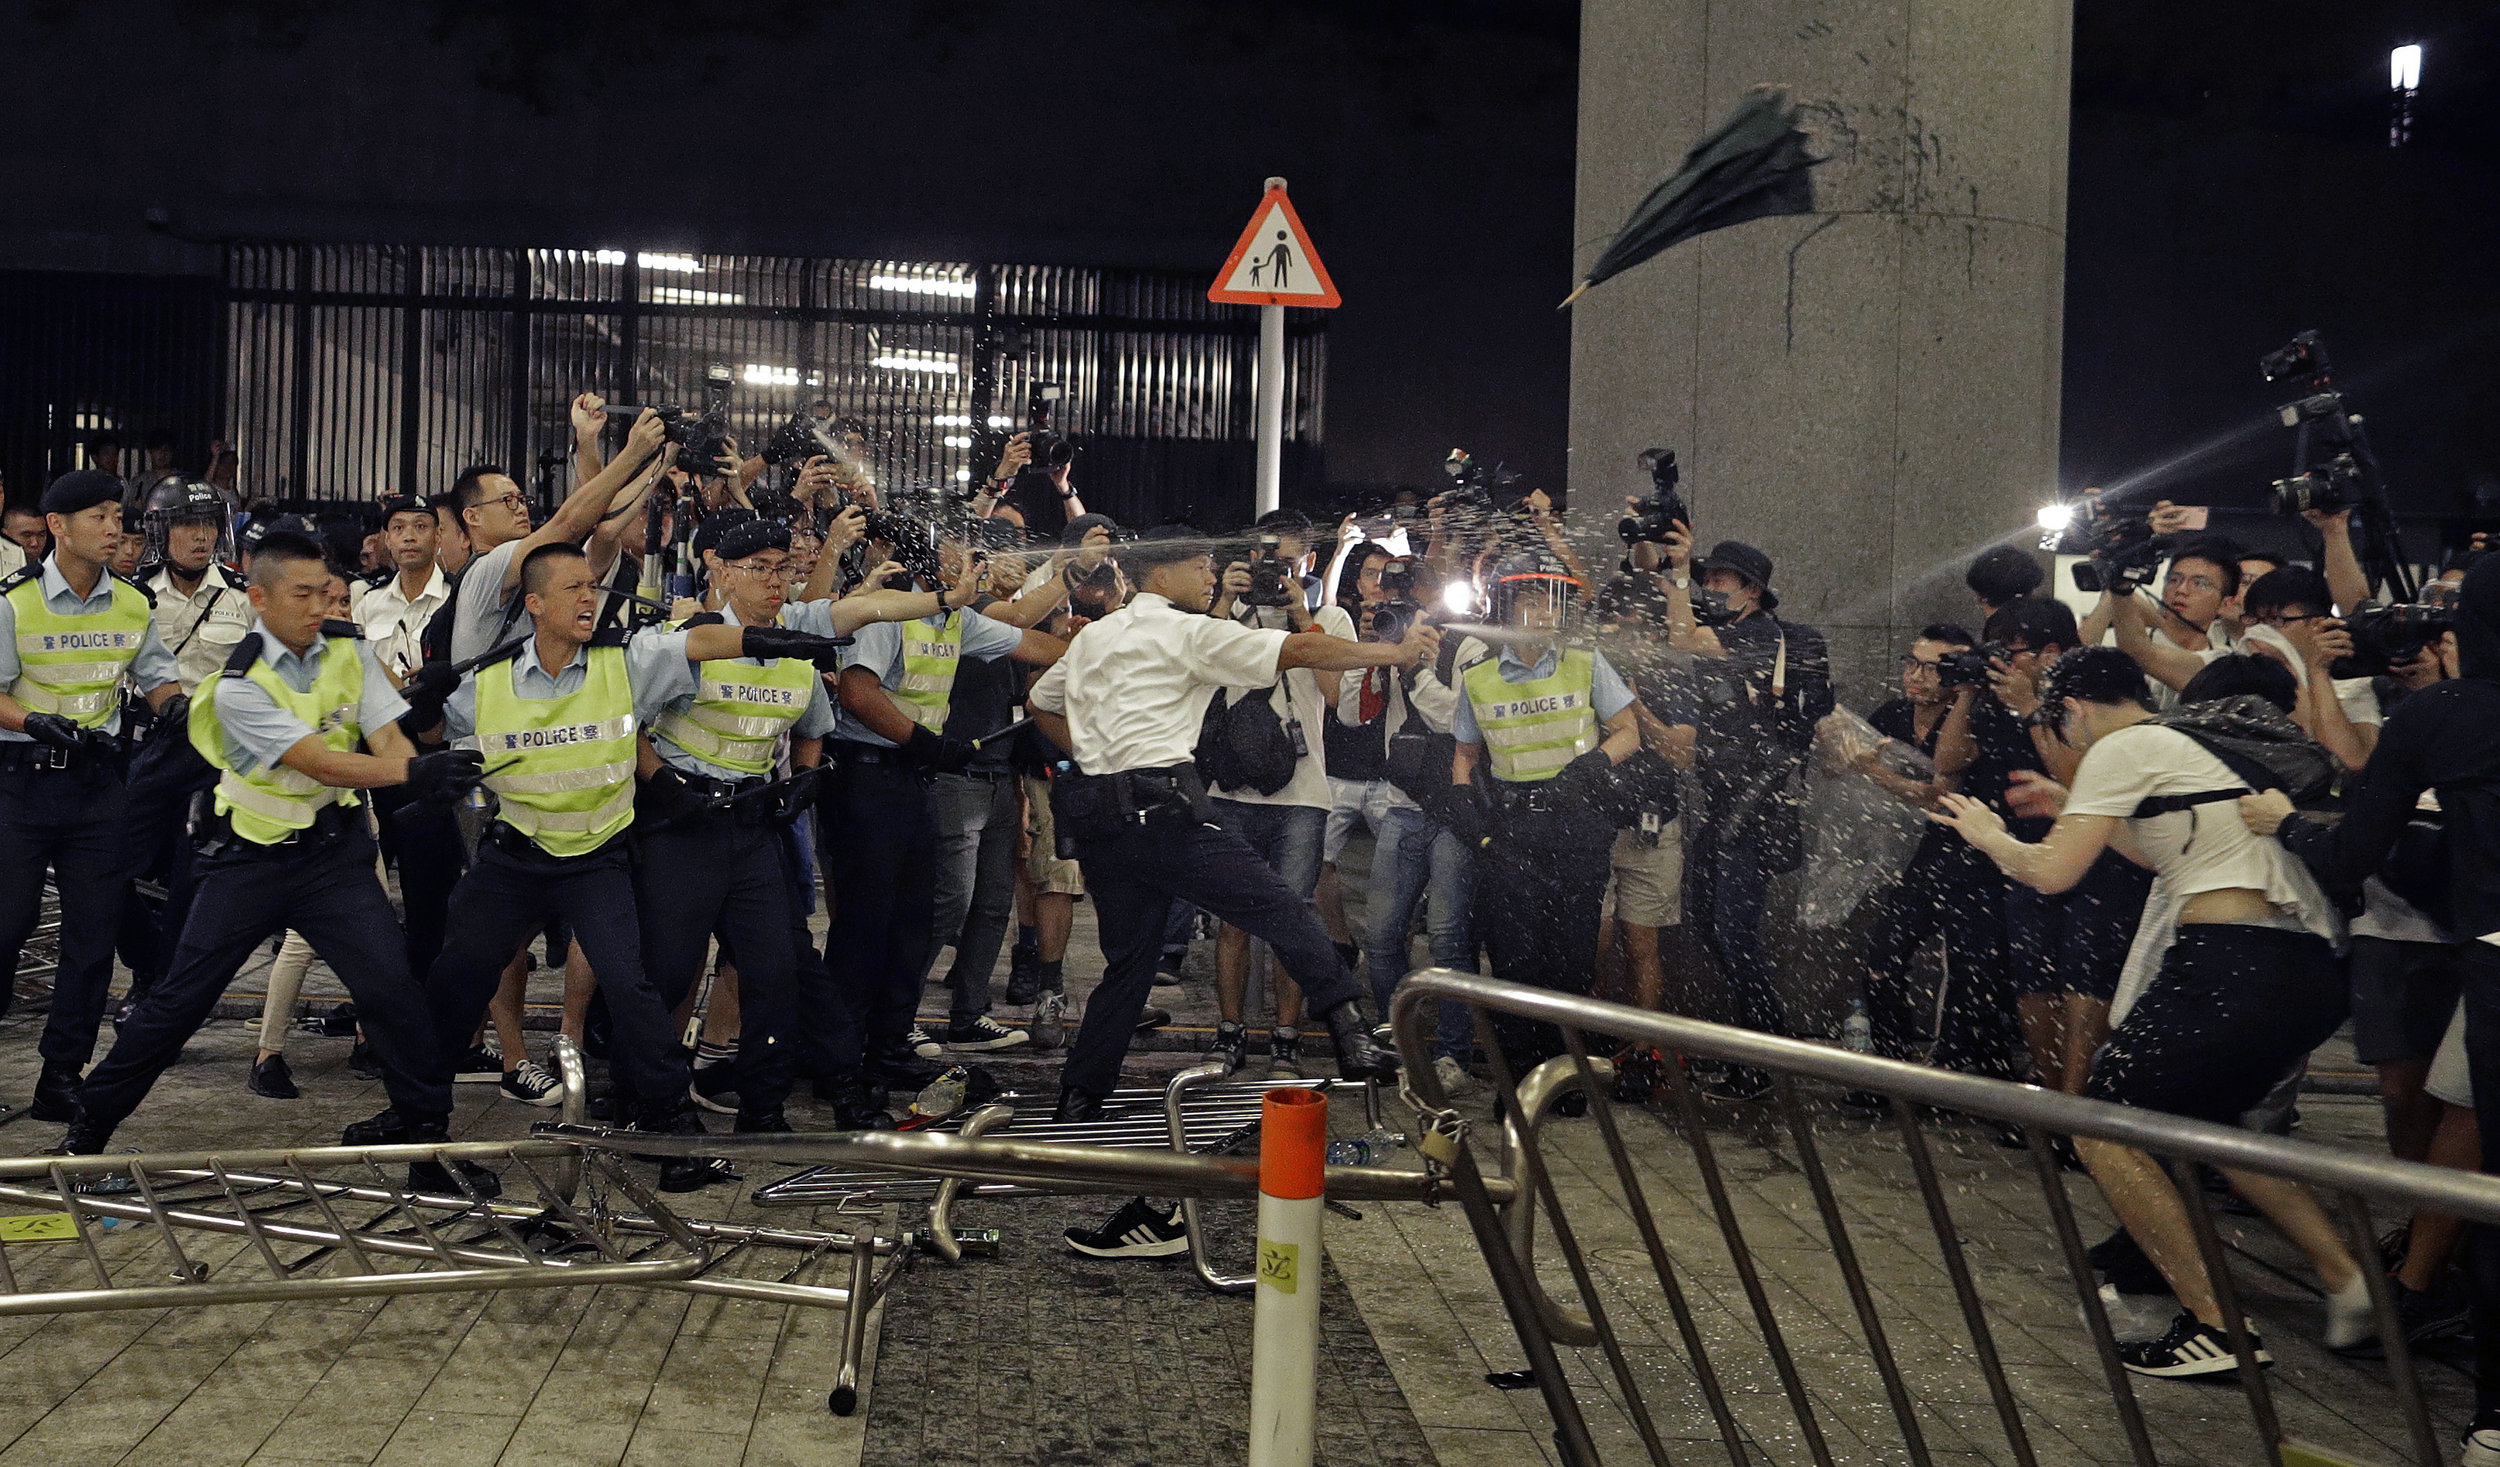 Police officers use pepper spray against protesters in a rally against the proposed amendments to the extradition law at the Legislative Council in Hong Kong on June 10, 2019. (AP Photo/Vincent Yu)